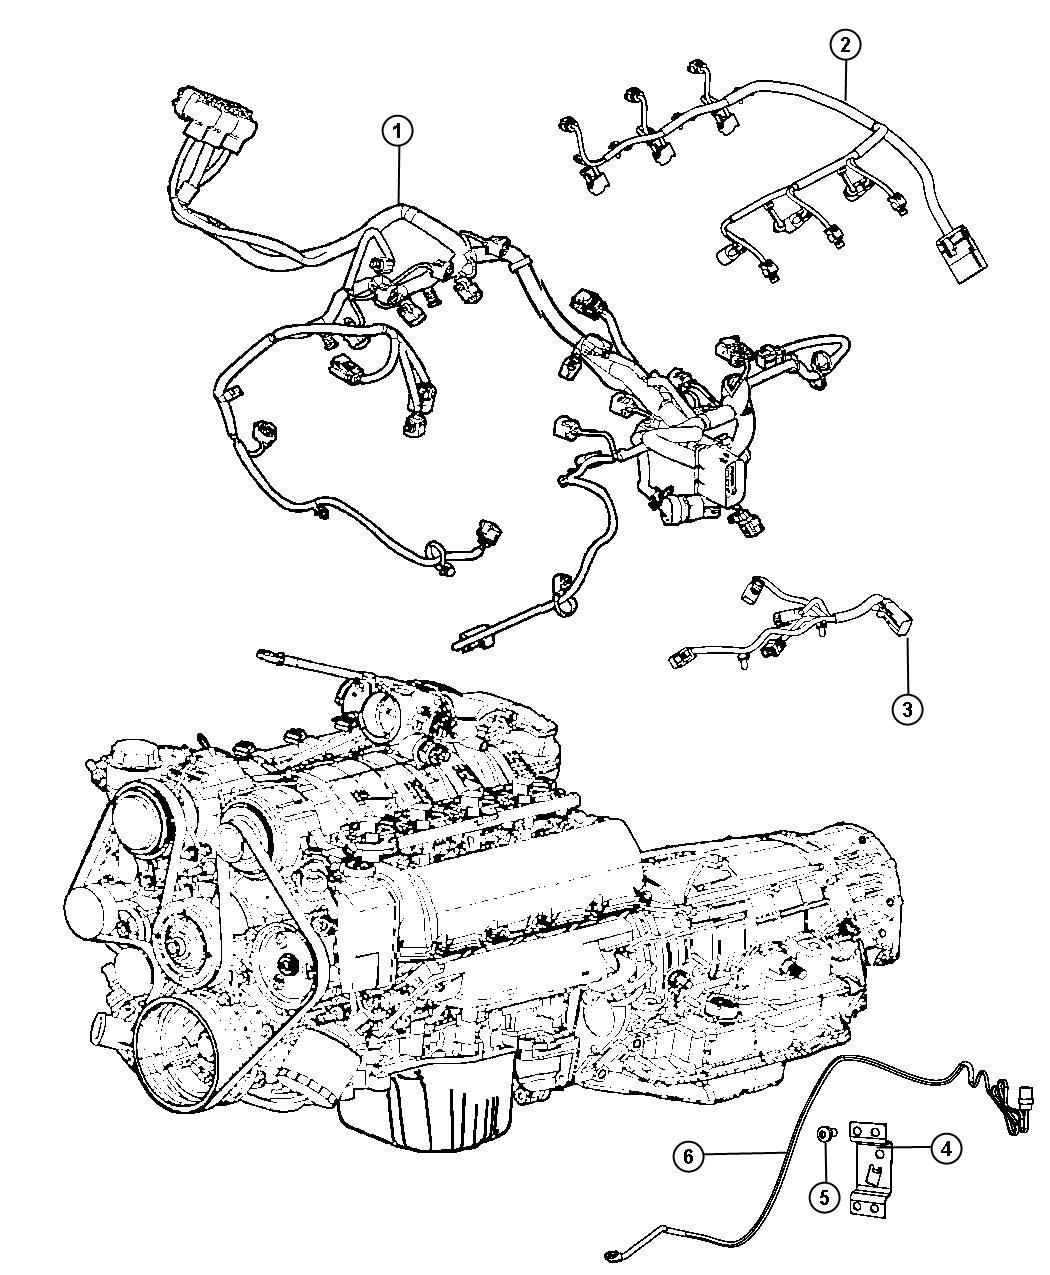 2013 Dodge Grand Caravan Wiring  Engine  Vvt